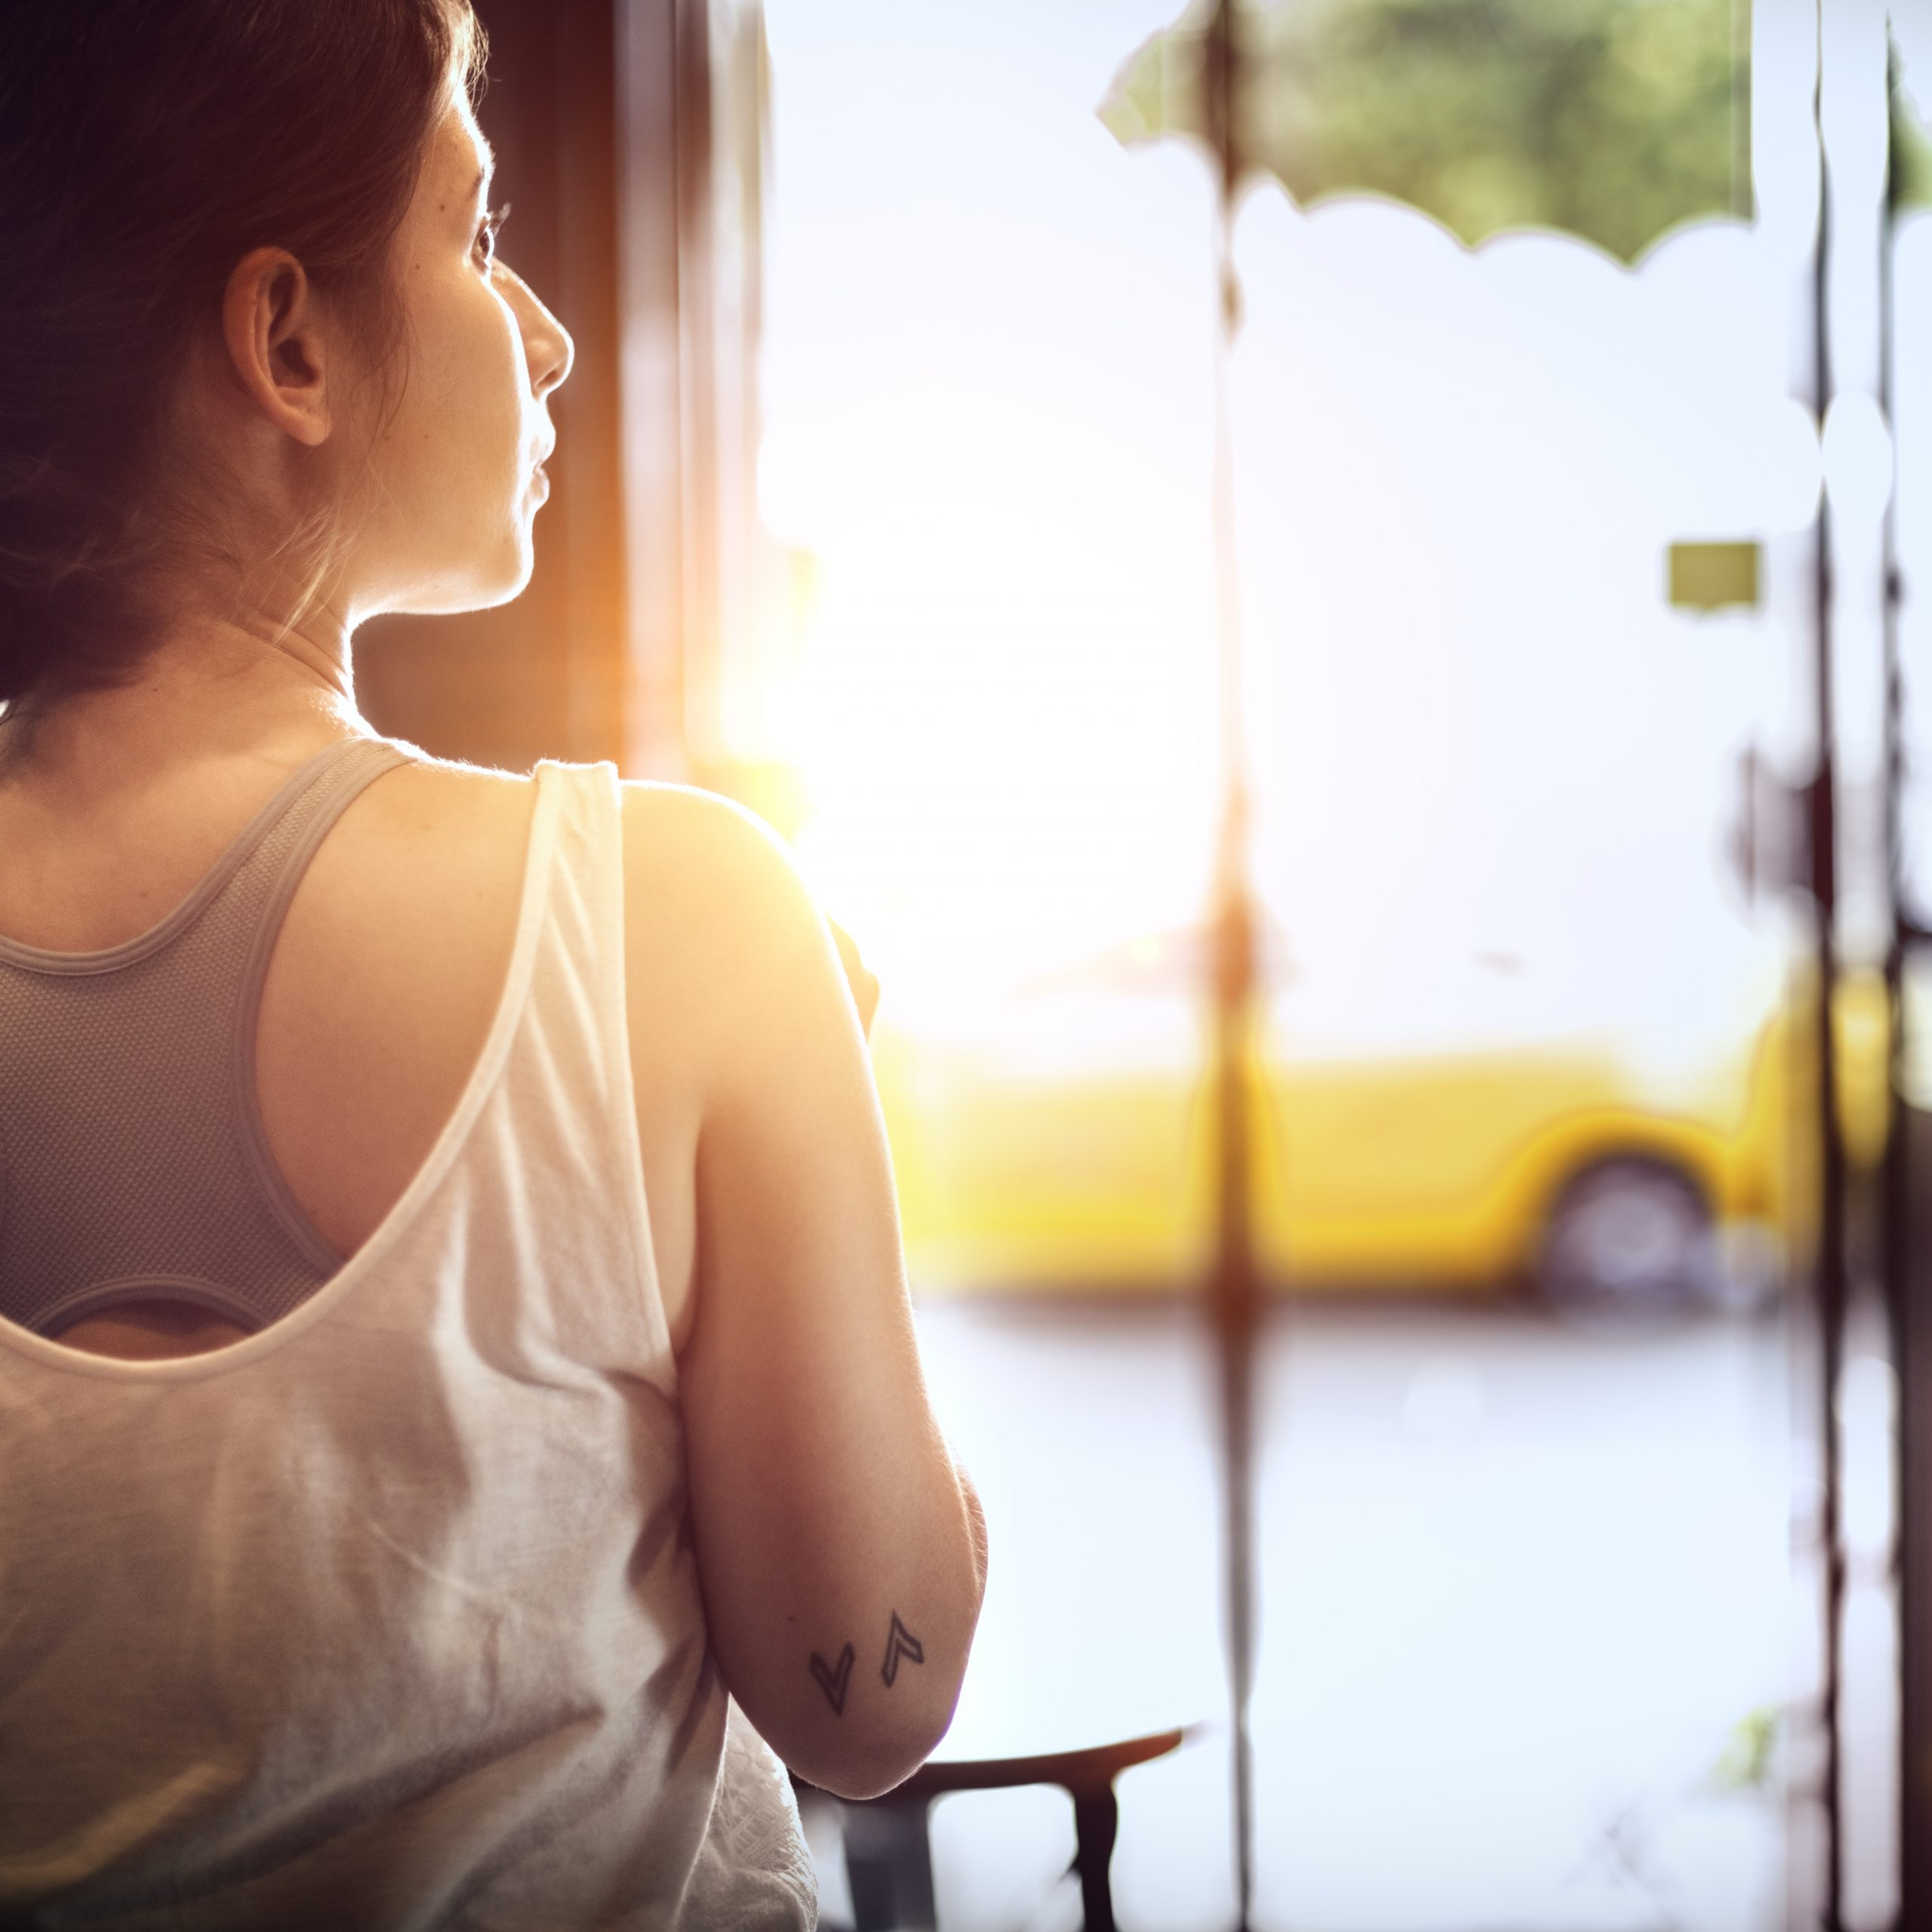 Photo of a woman looking out a window.